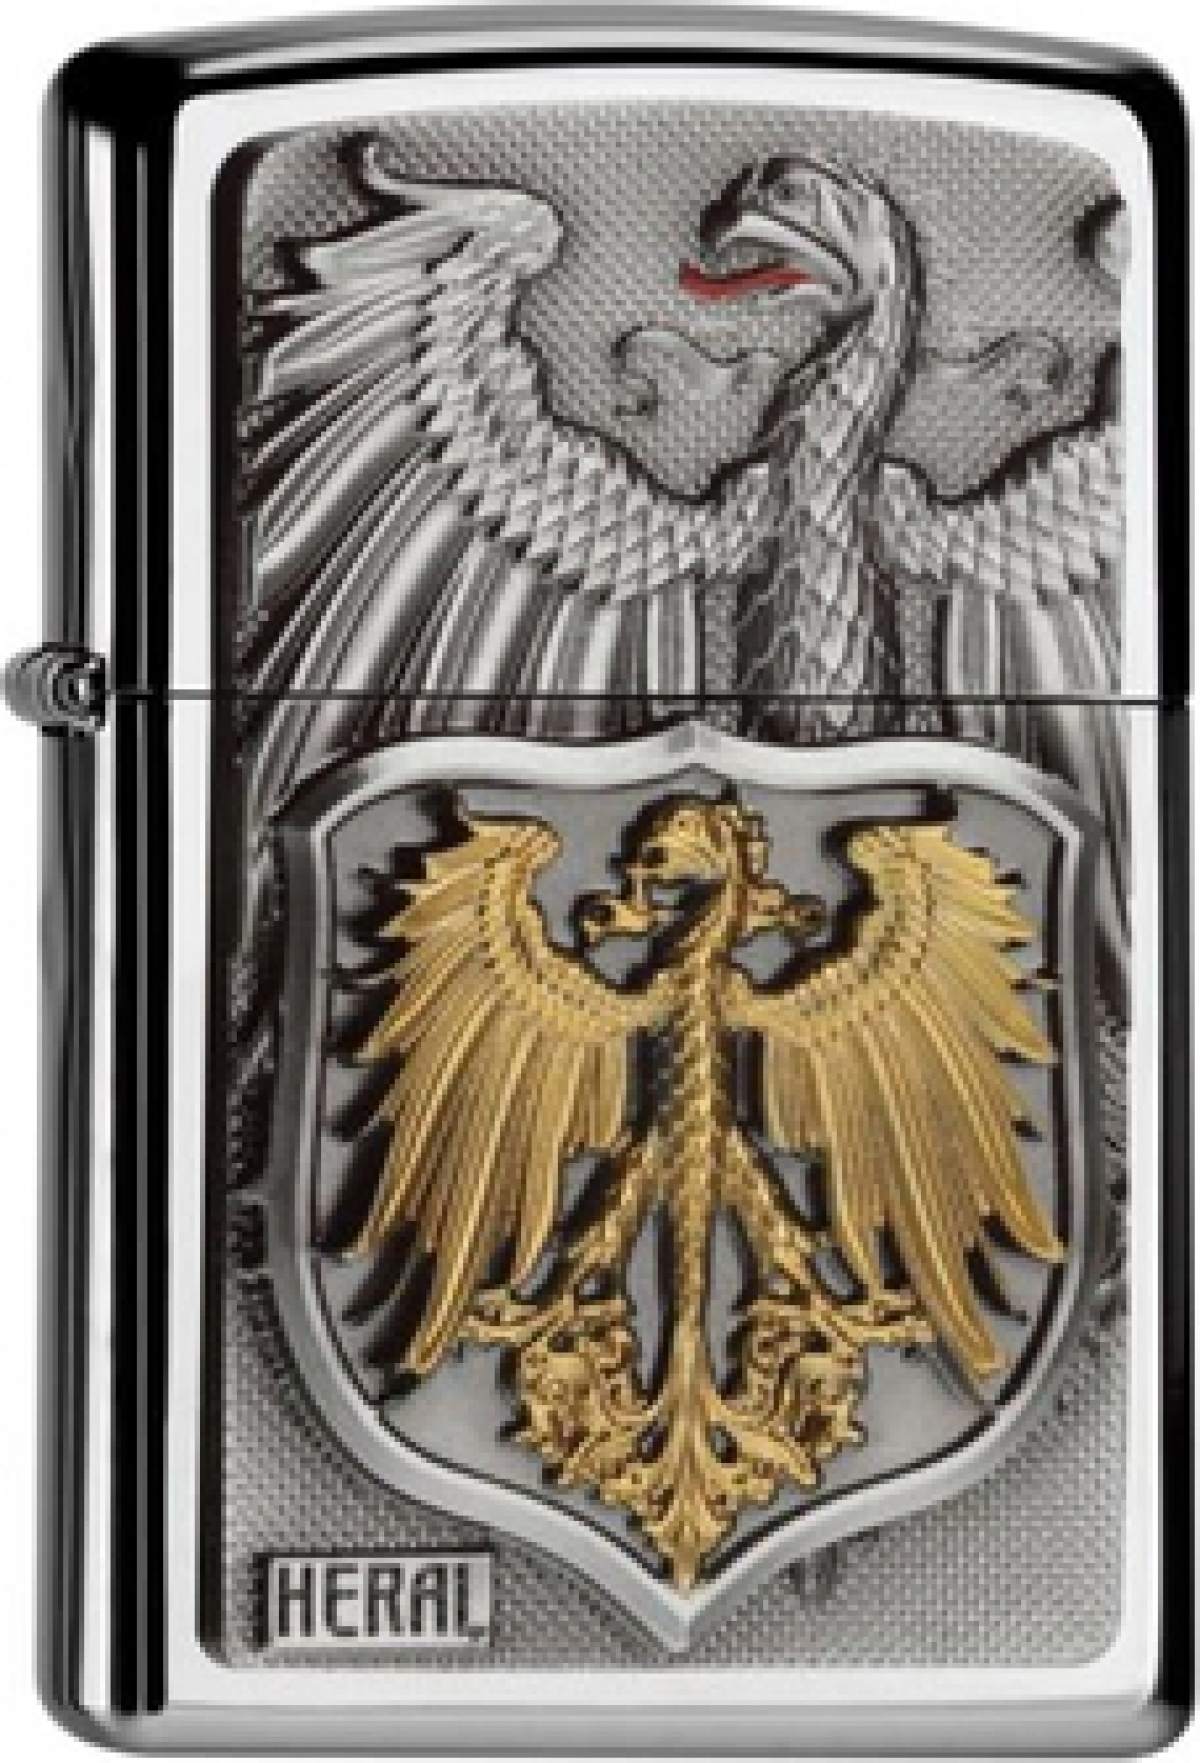 Zippo Lighter Heral arco limited Edition 2004555